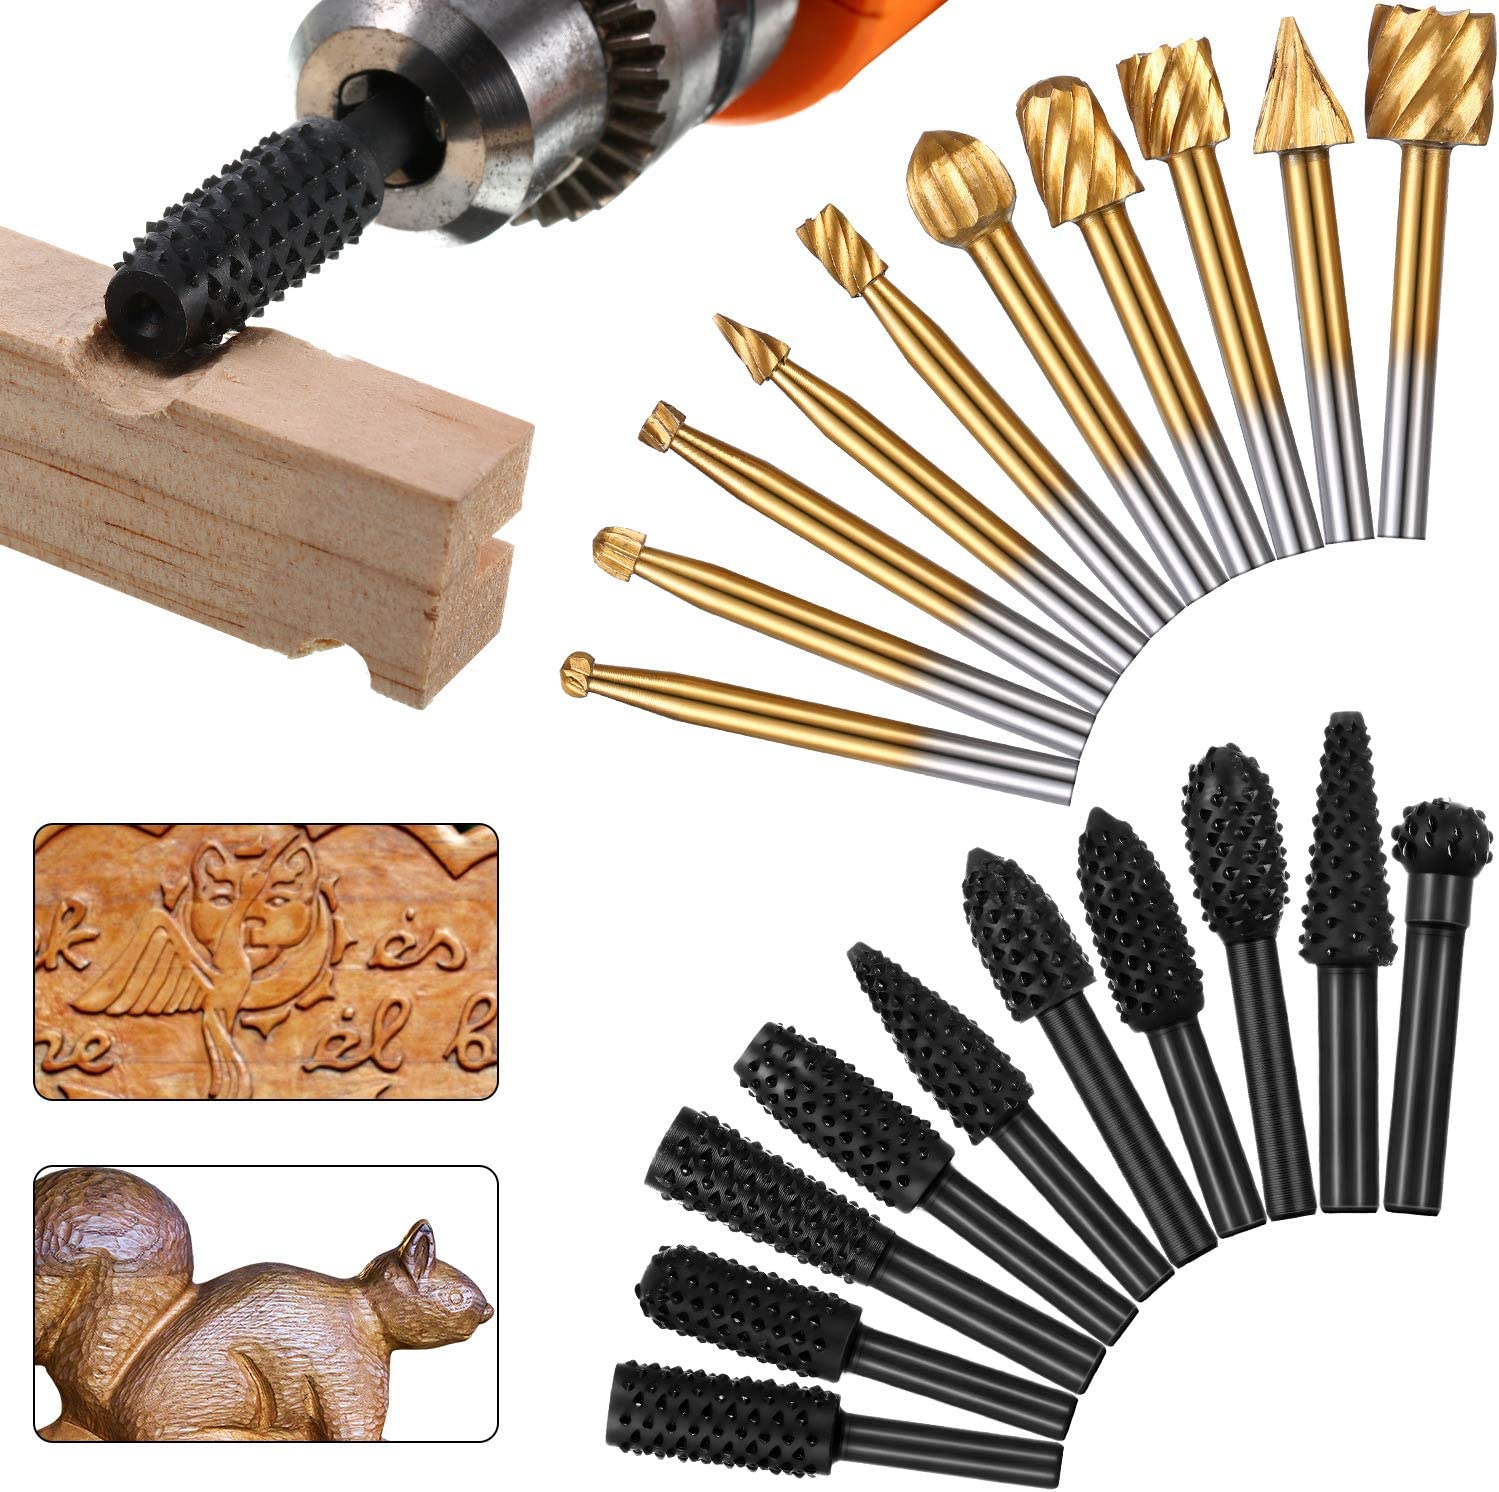 10 Pieces Woodworking Max 50% OFF Drill Bits High Rasp with Ranking TOP12 Speed Bit